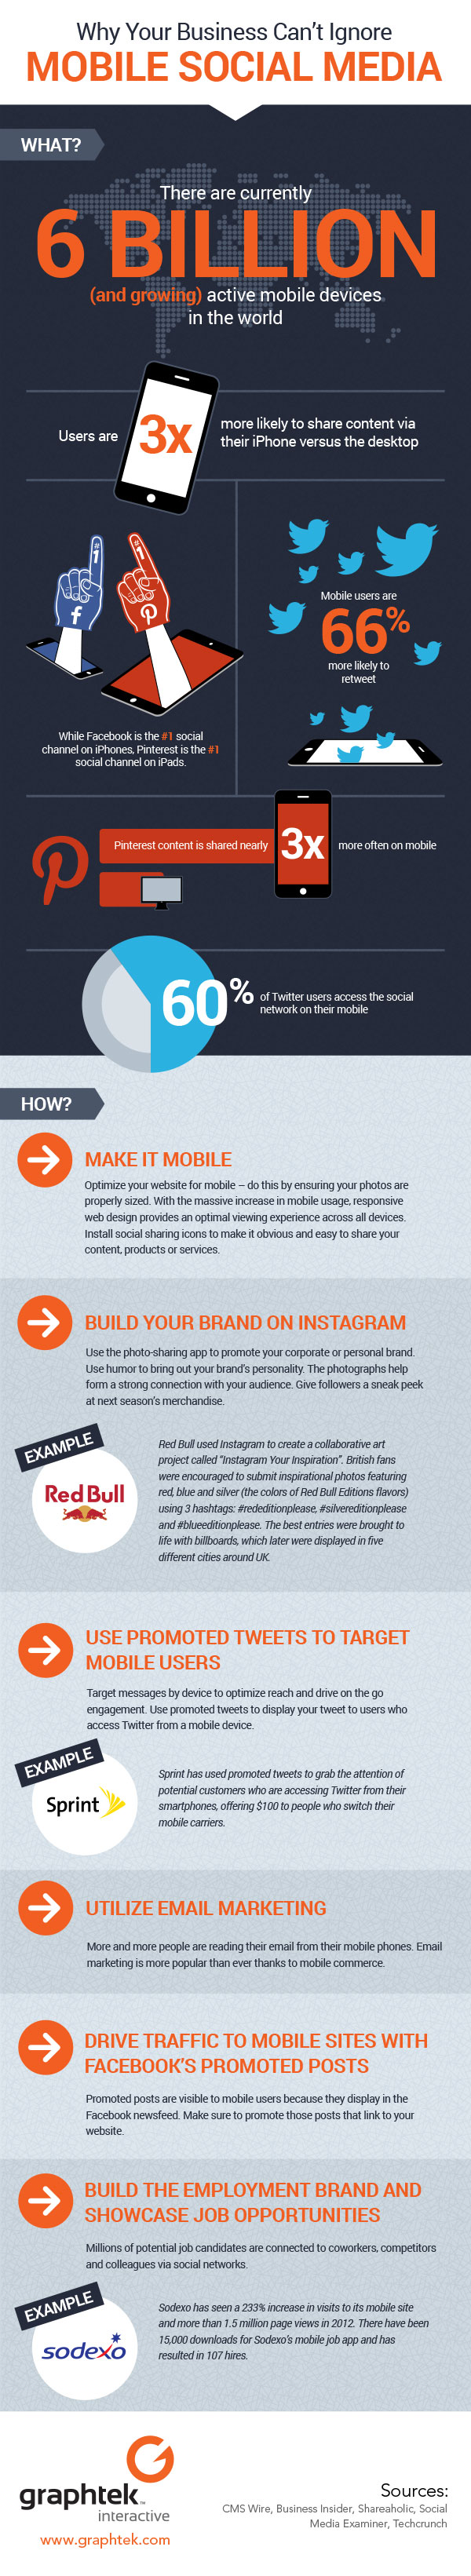 infographic___mobile_social_media_600px